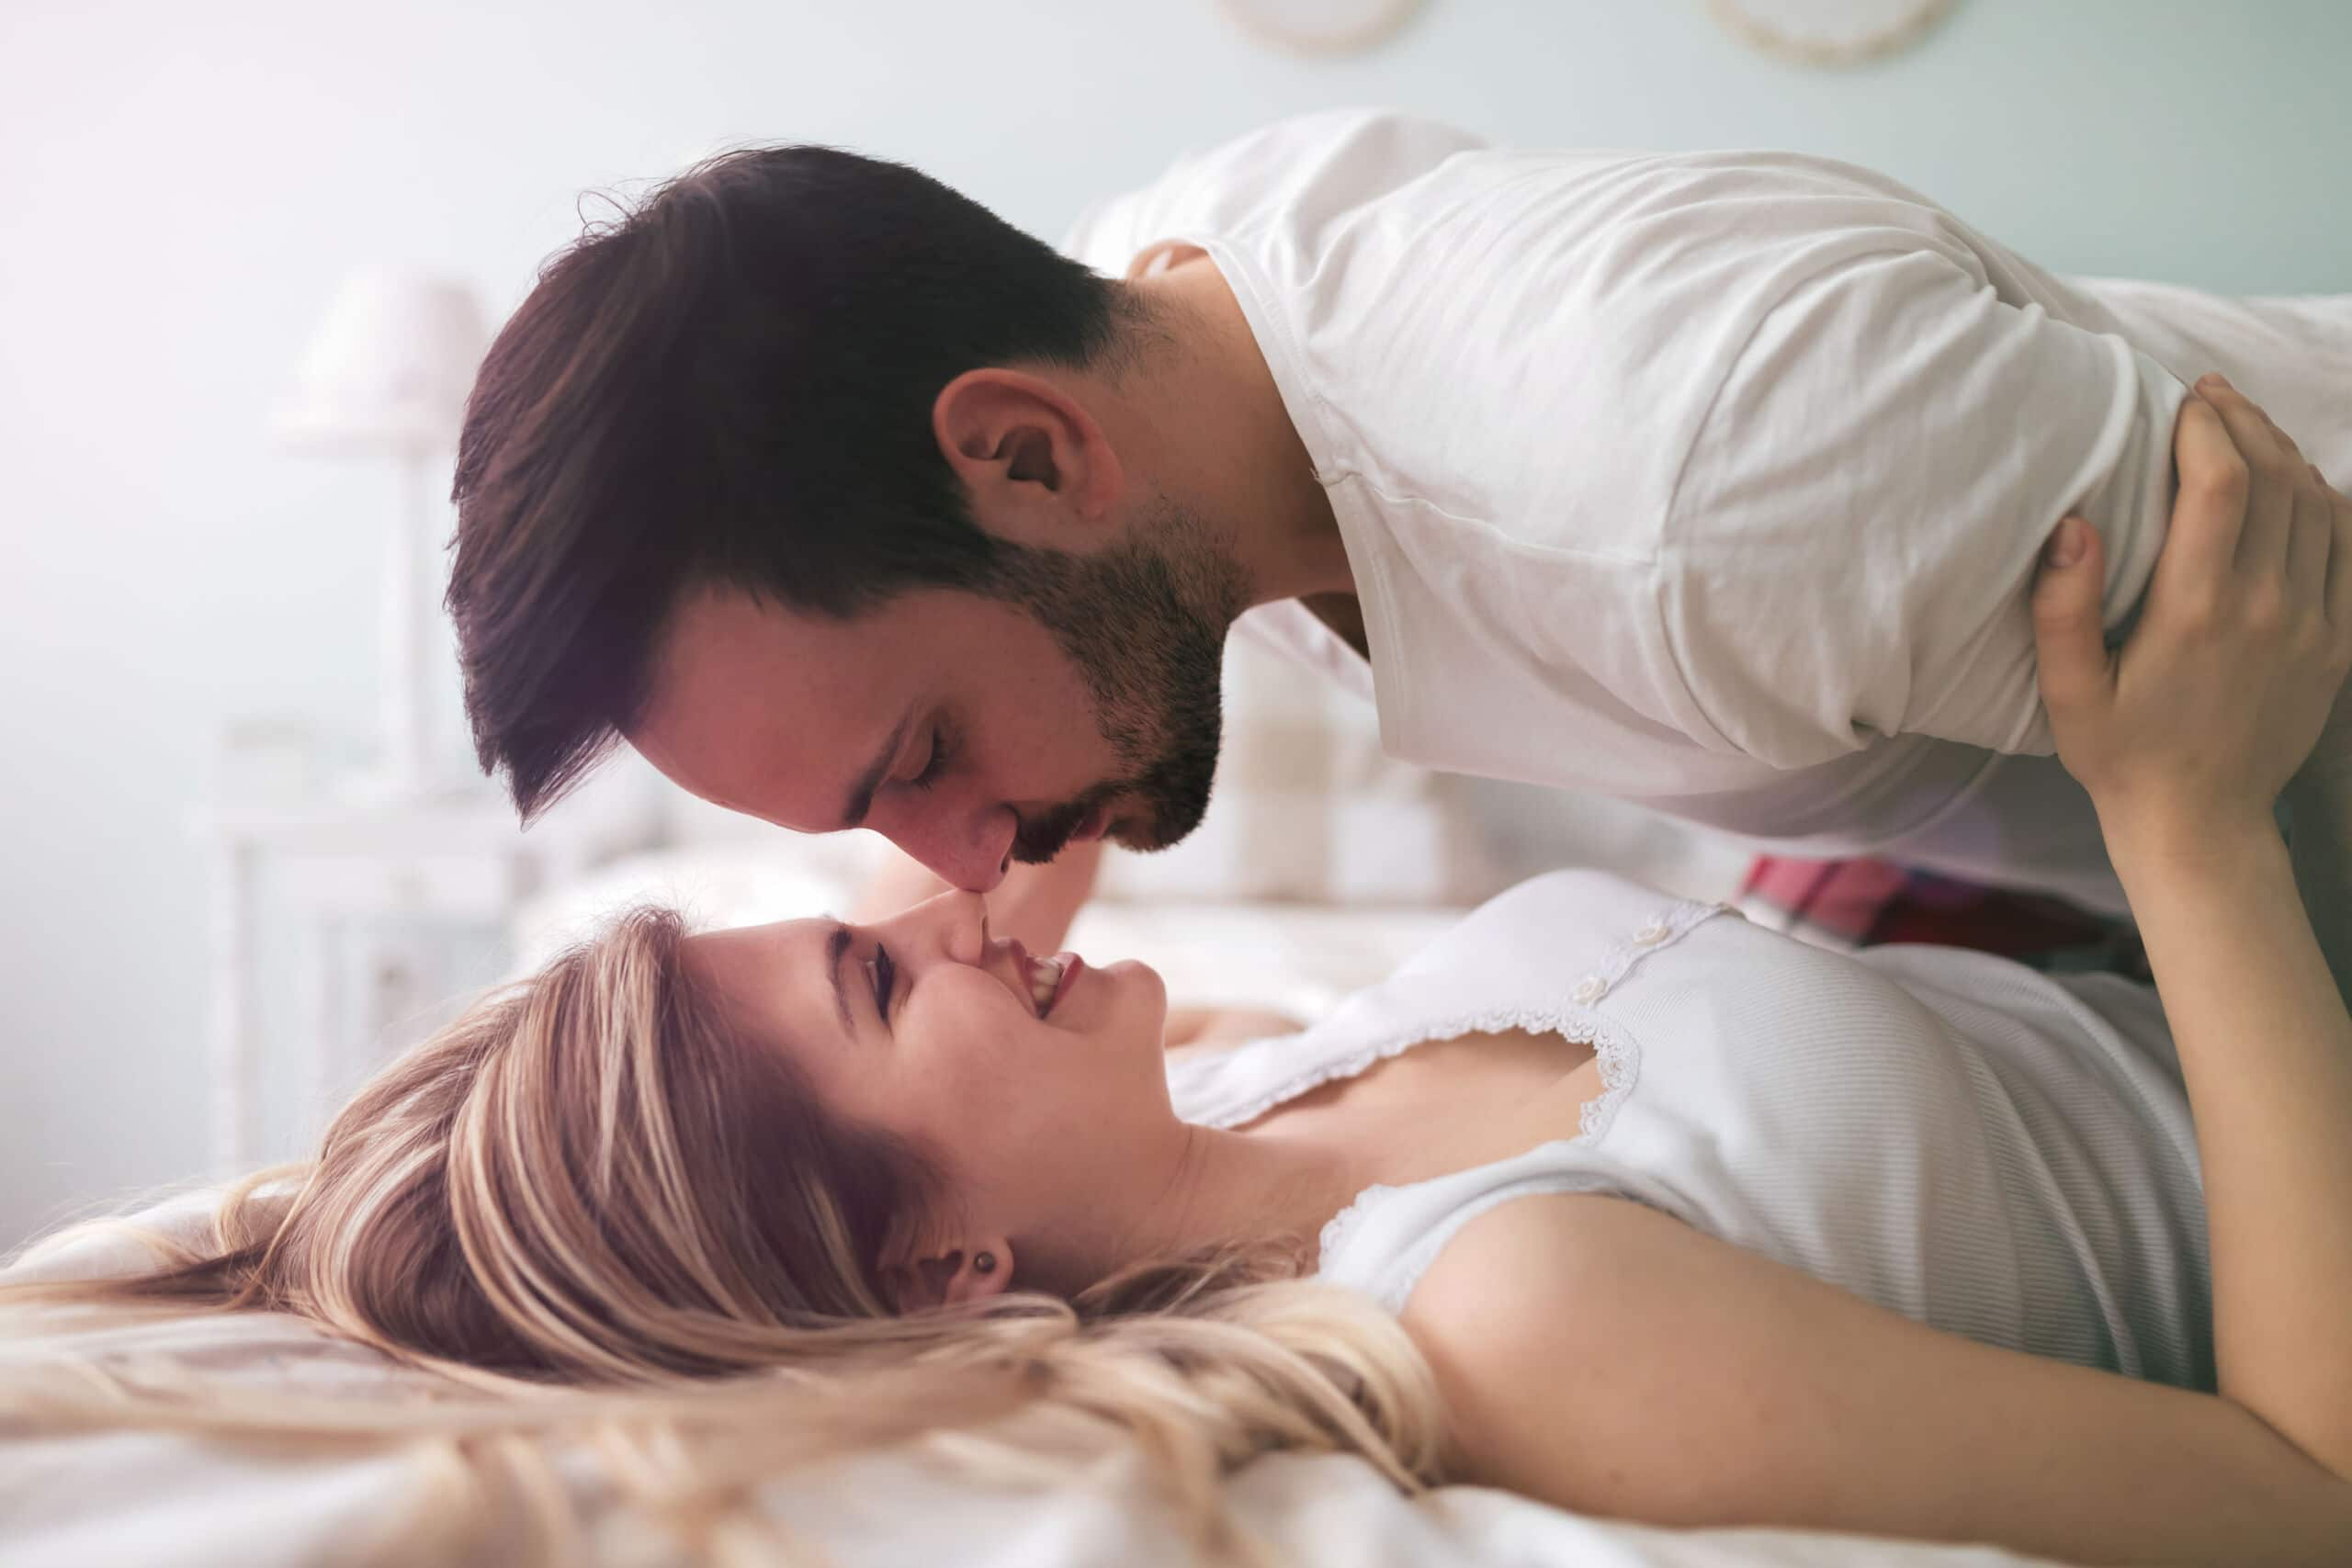 More Sex in My Marriage